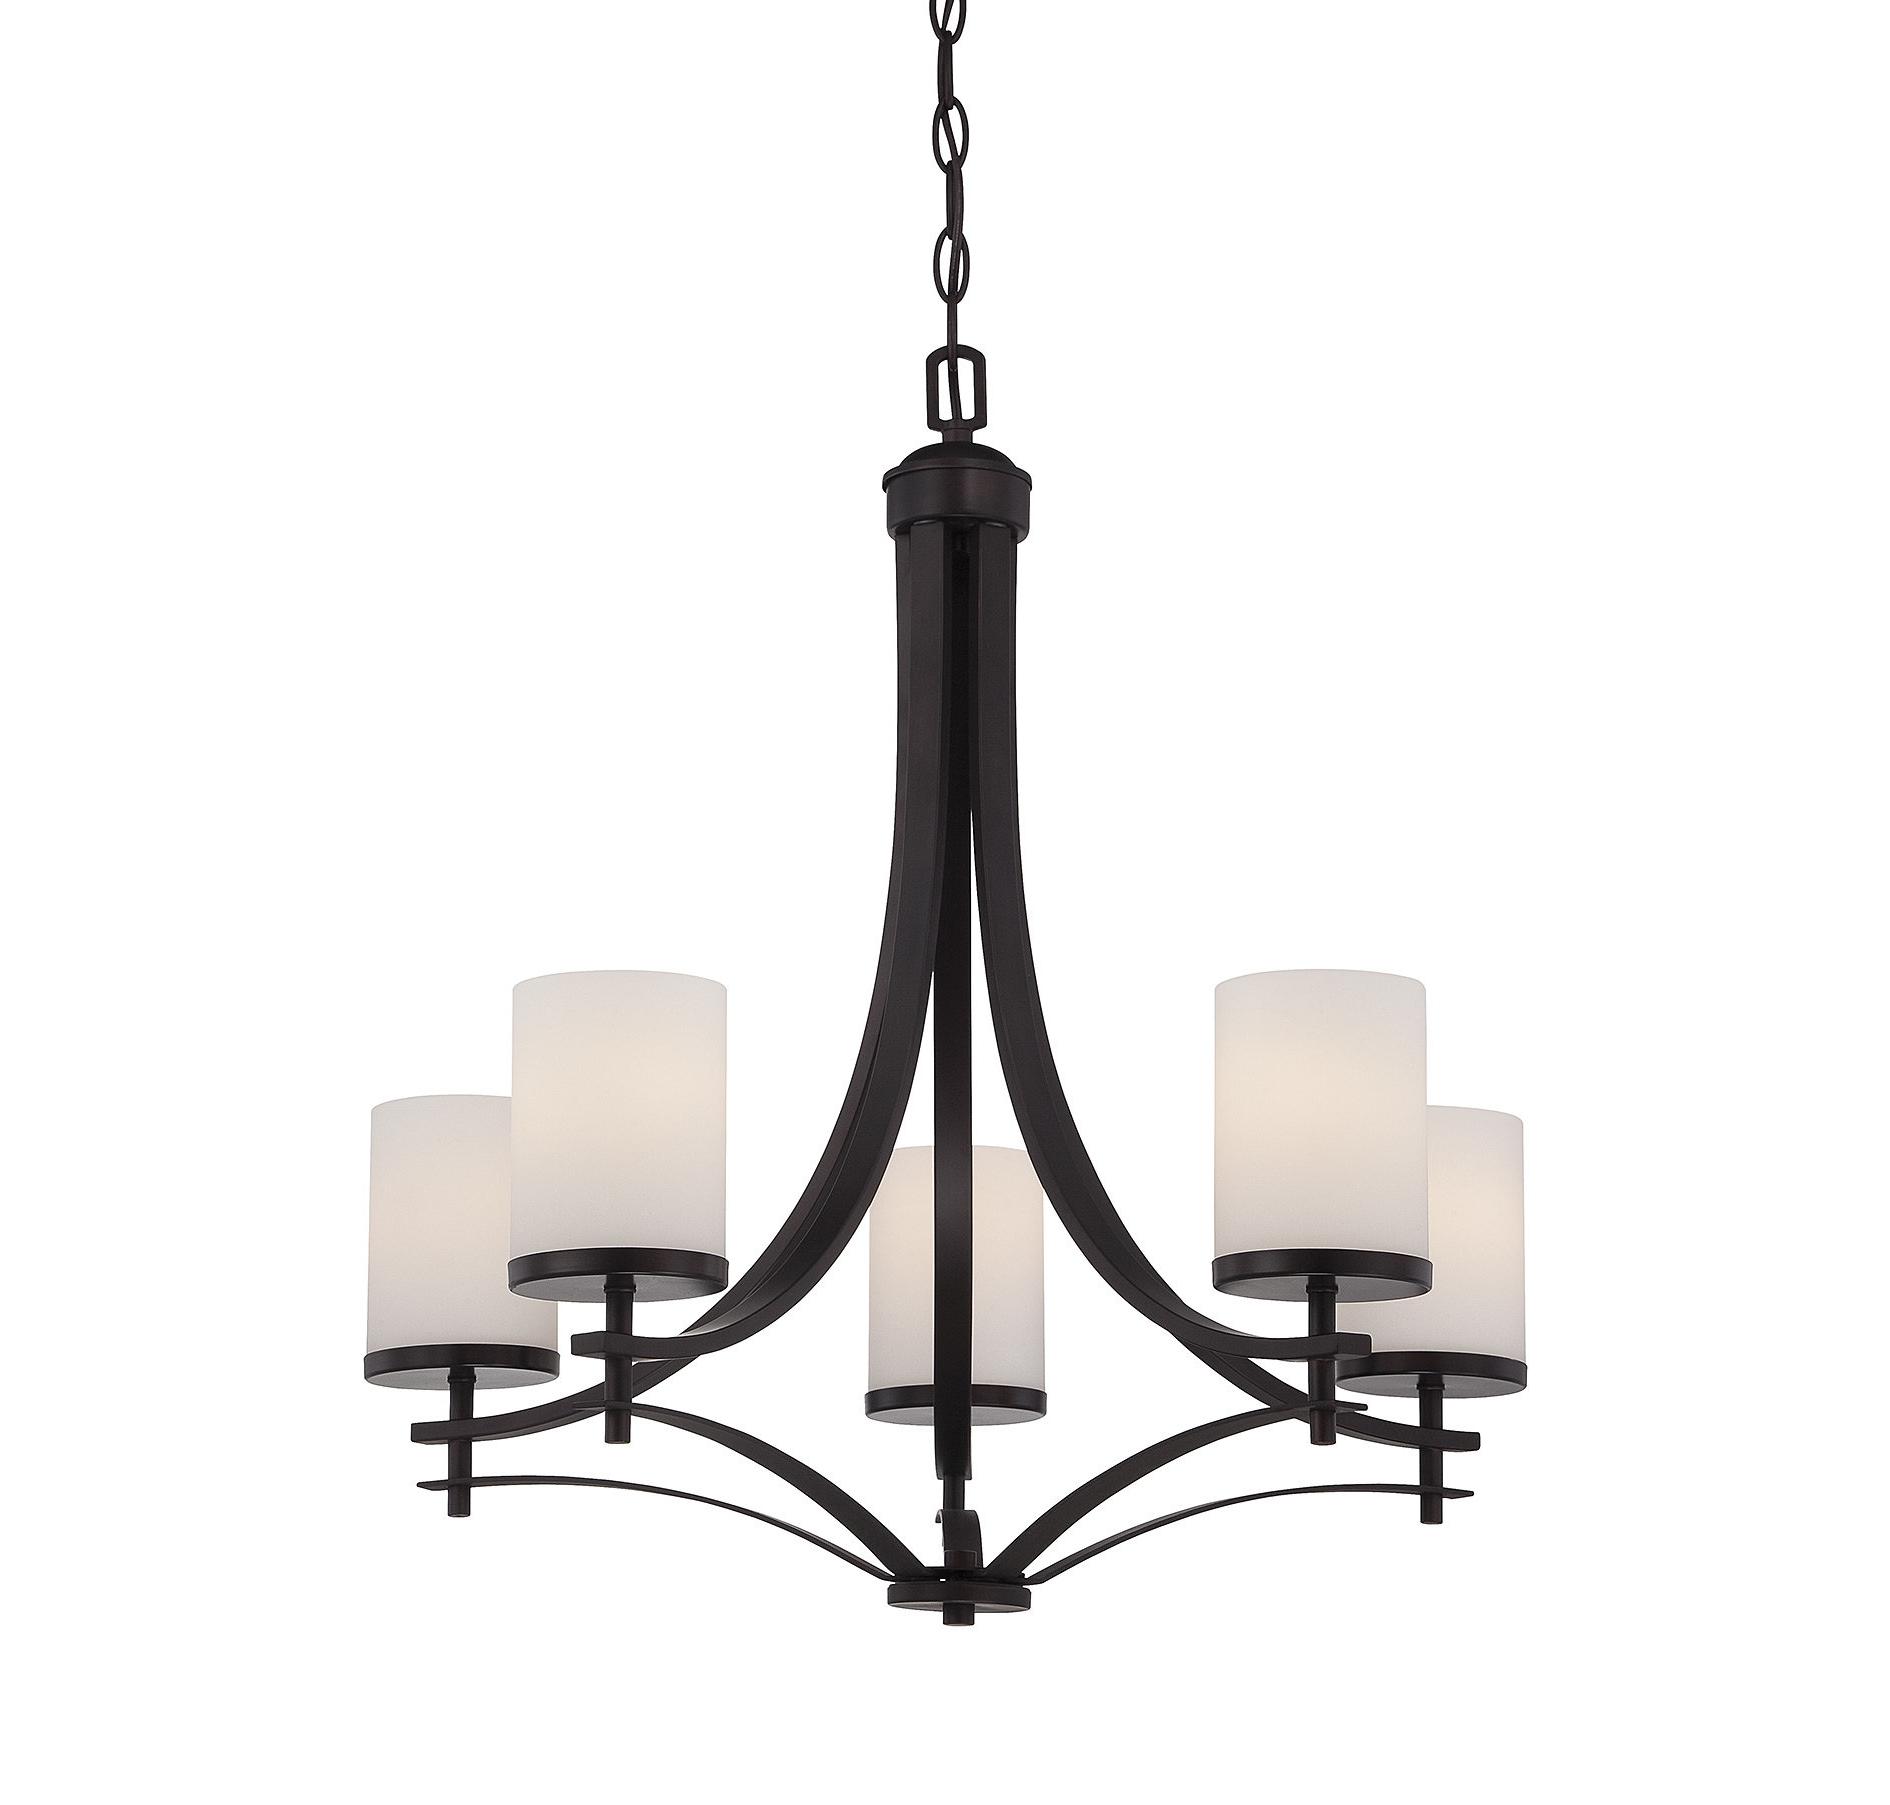 Agnes 5 Light Shaded Chandelier With Regard To Most Up To Date Suki 5 Light Shaded Chandeliers (View 17 of 25)